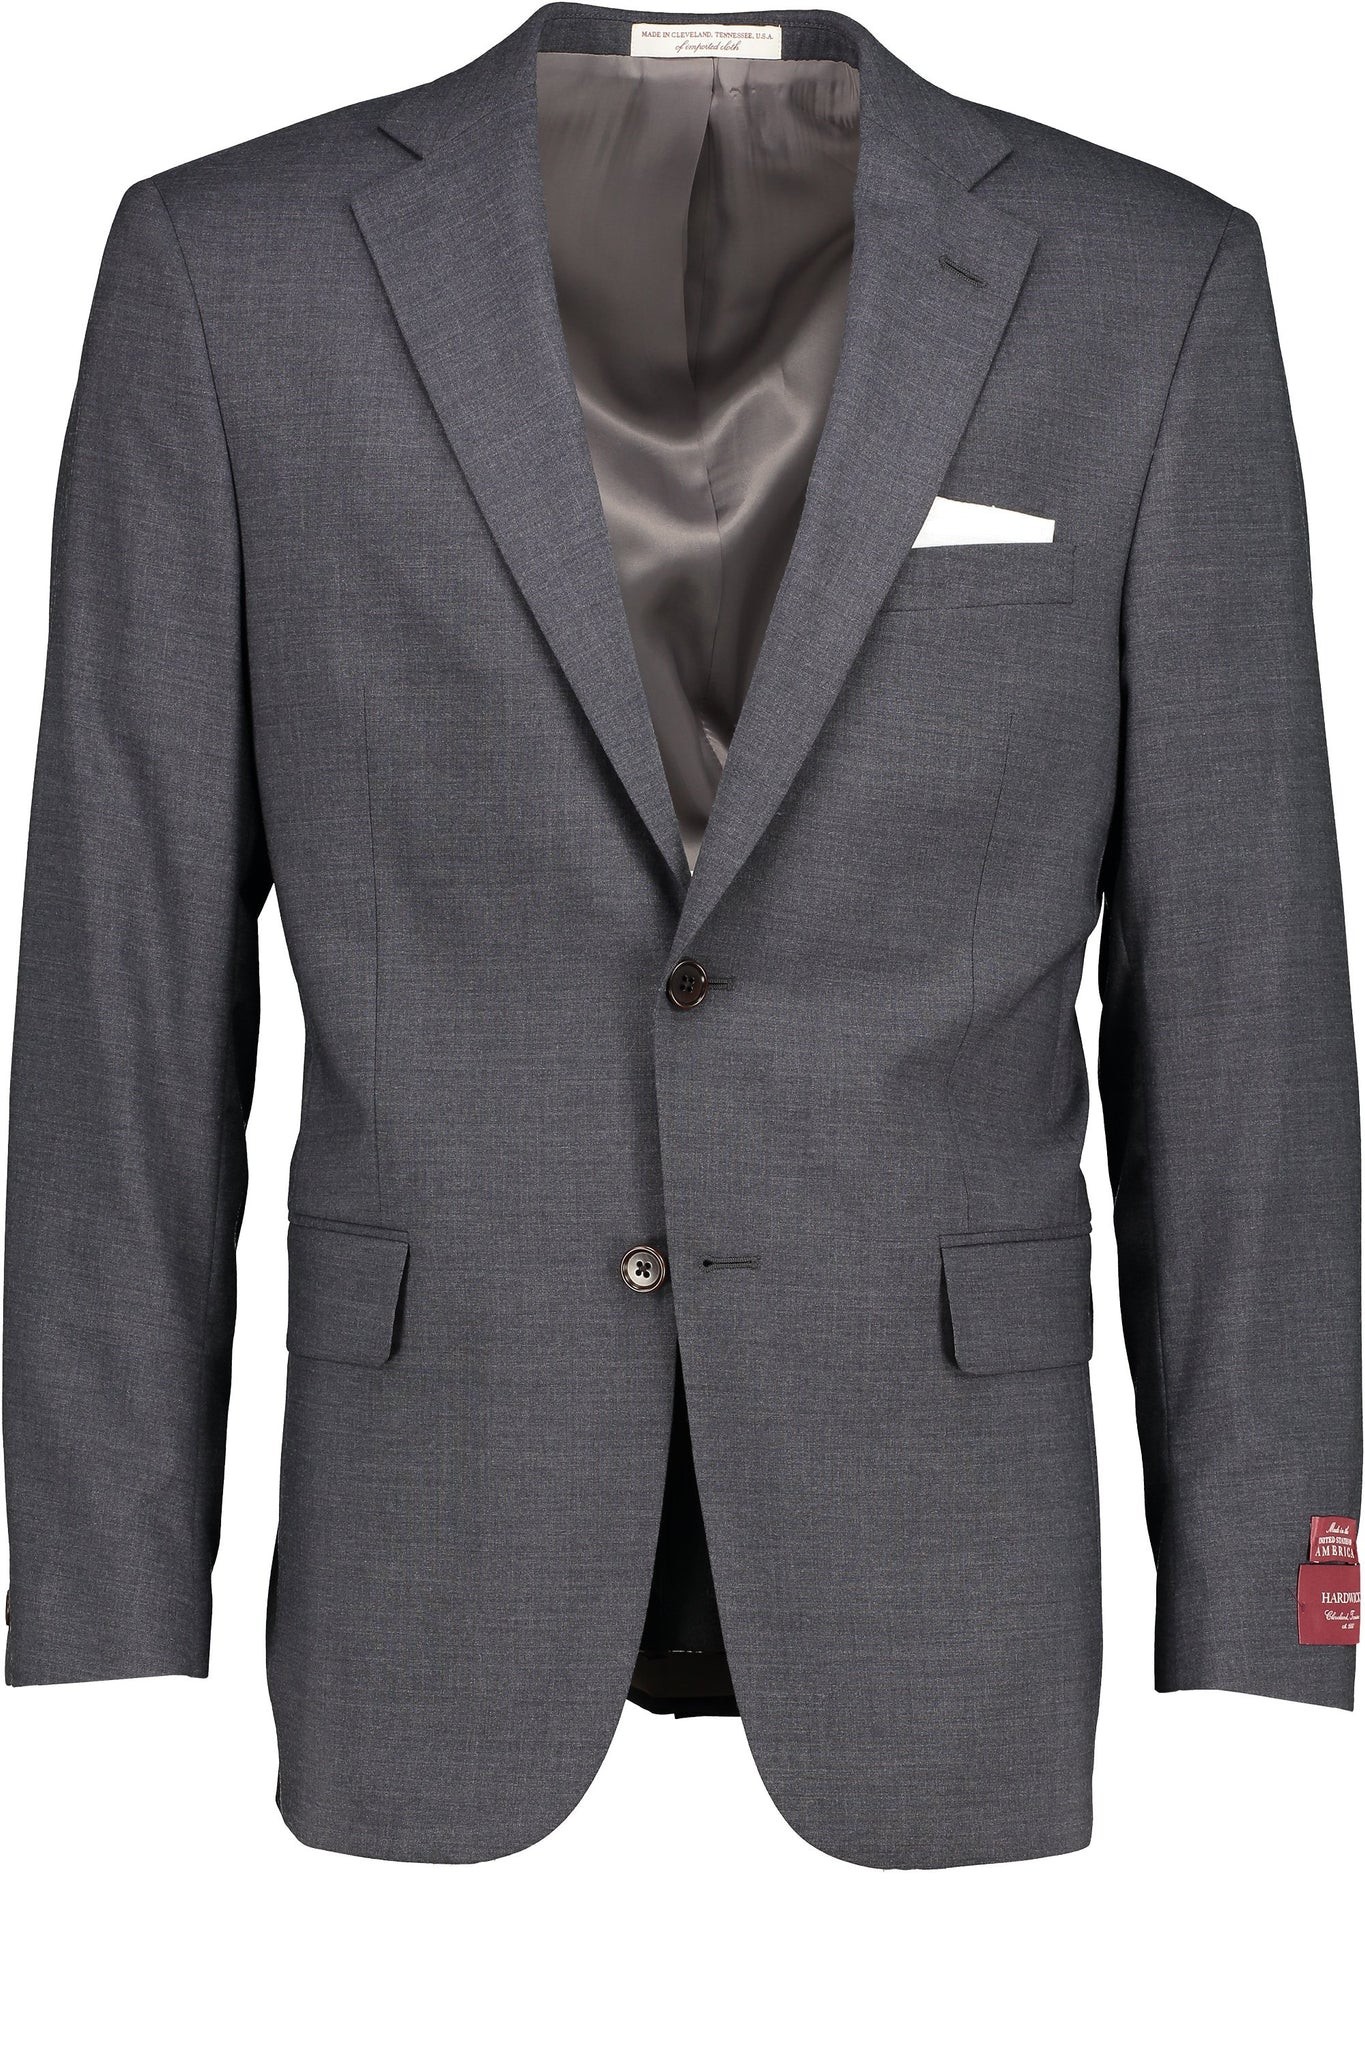 Classic Fit Grey H-Tech Wool SS Jacket - Big & Tall -  Hardwick.com